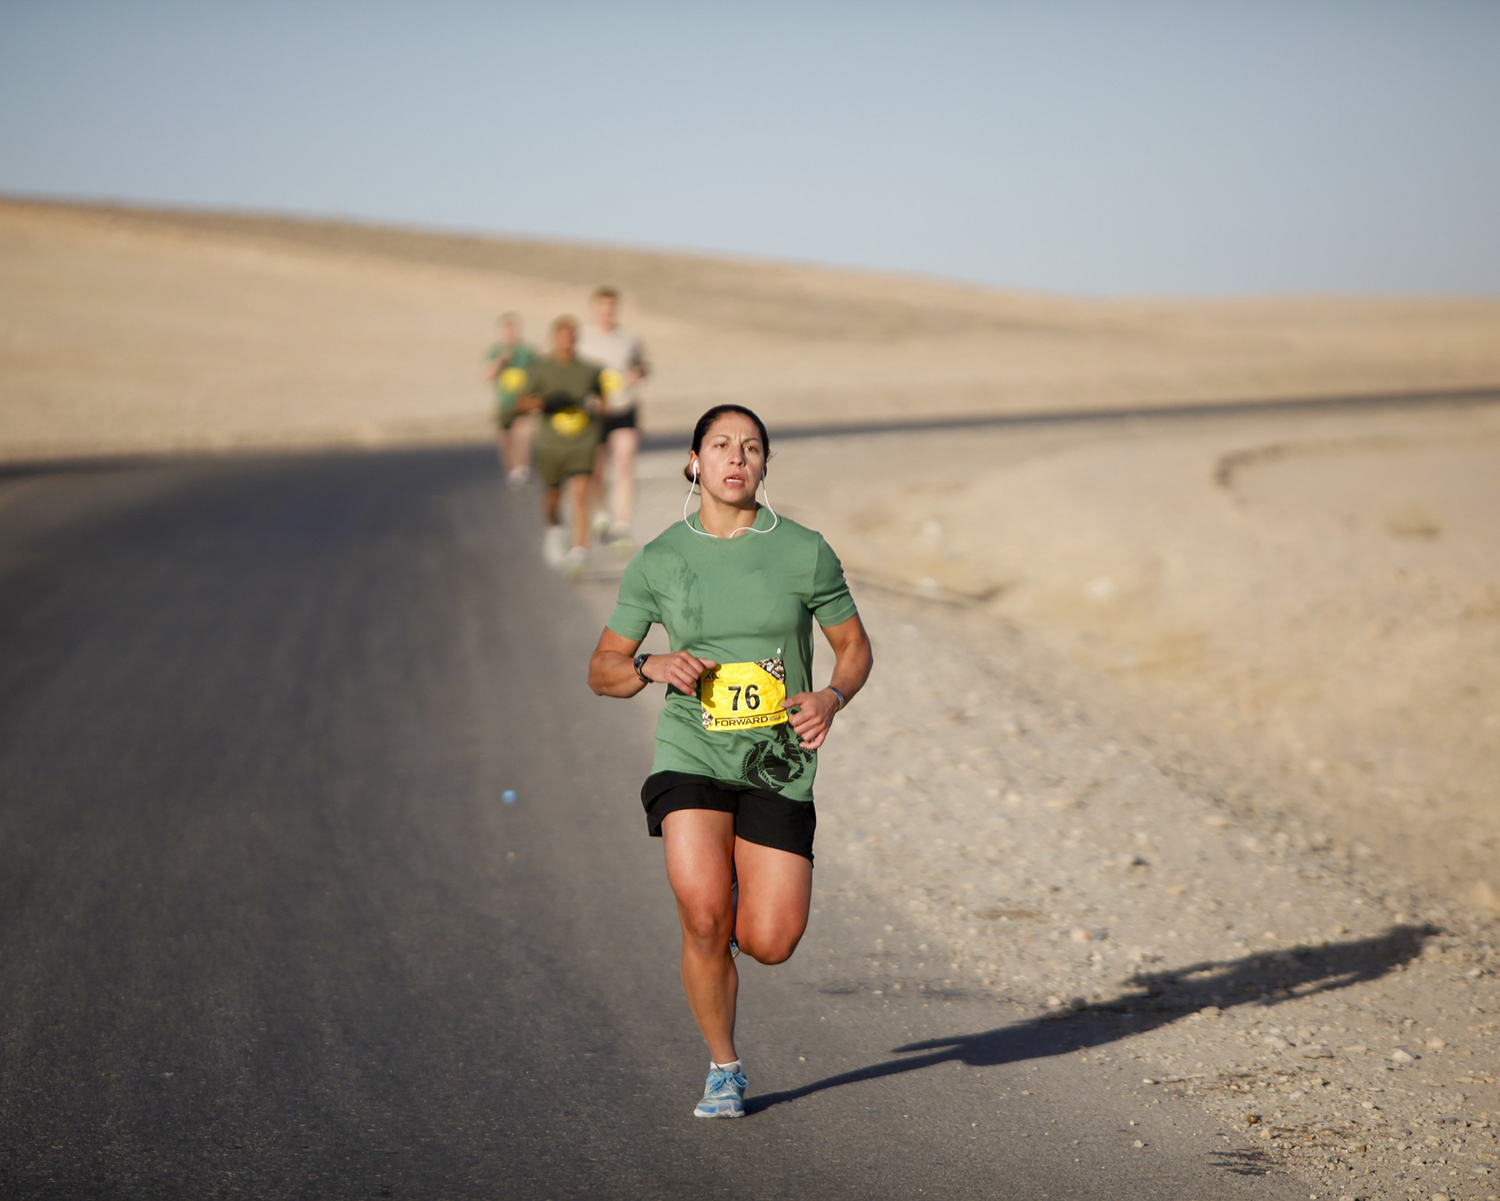 Fit Woman Running in Marathon Competition